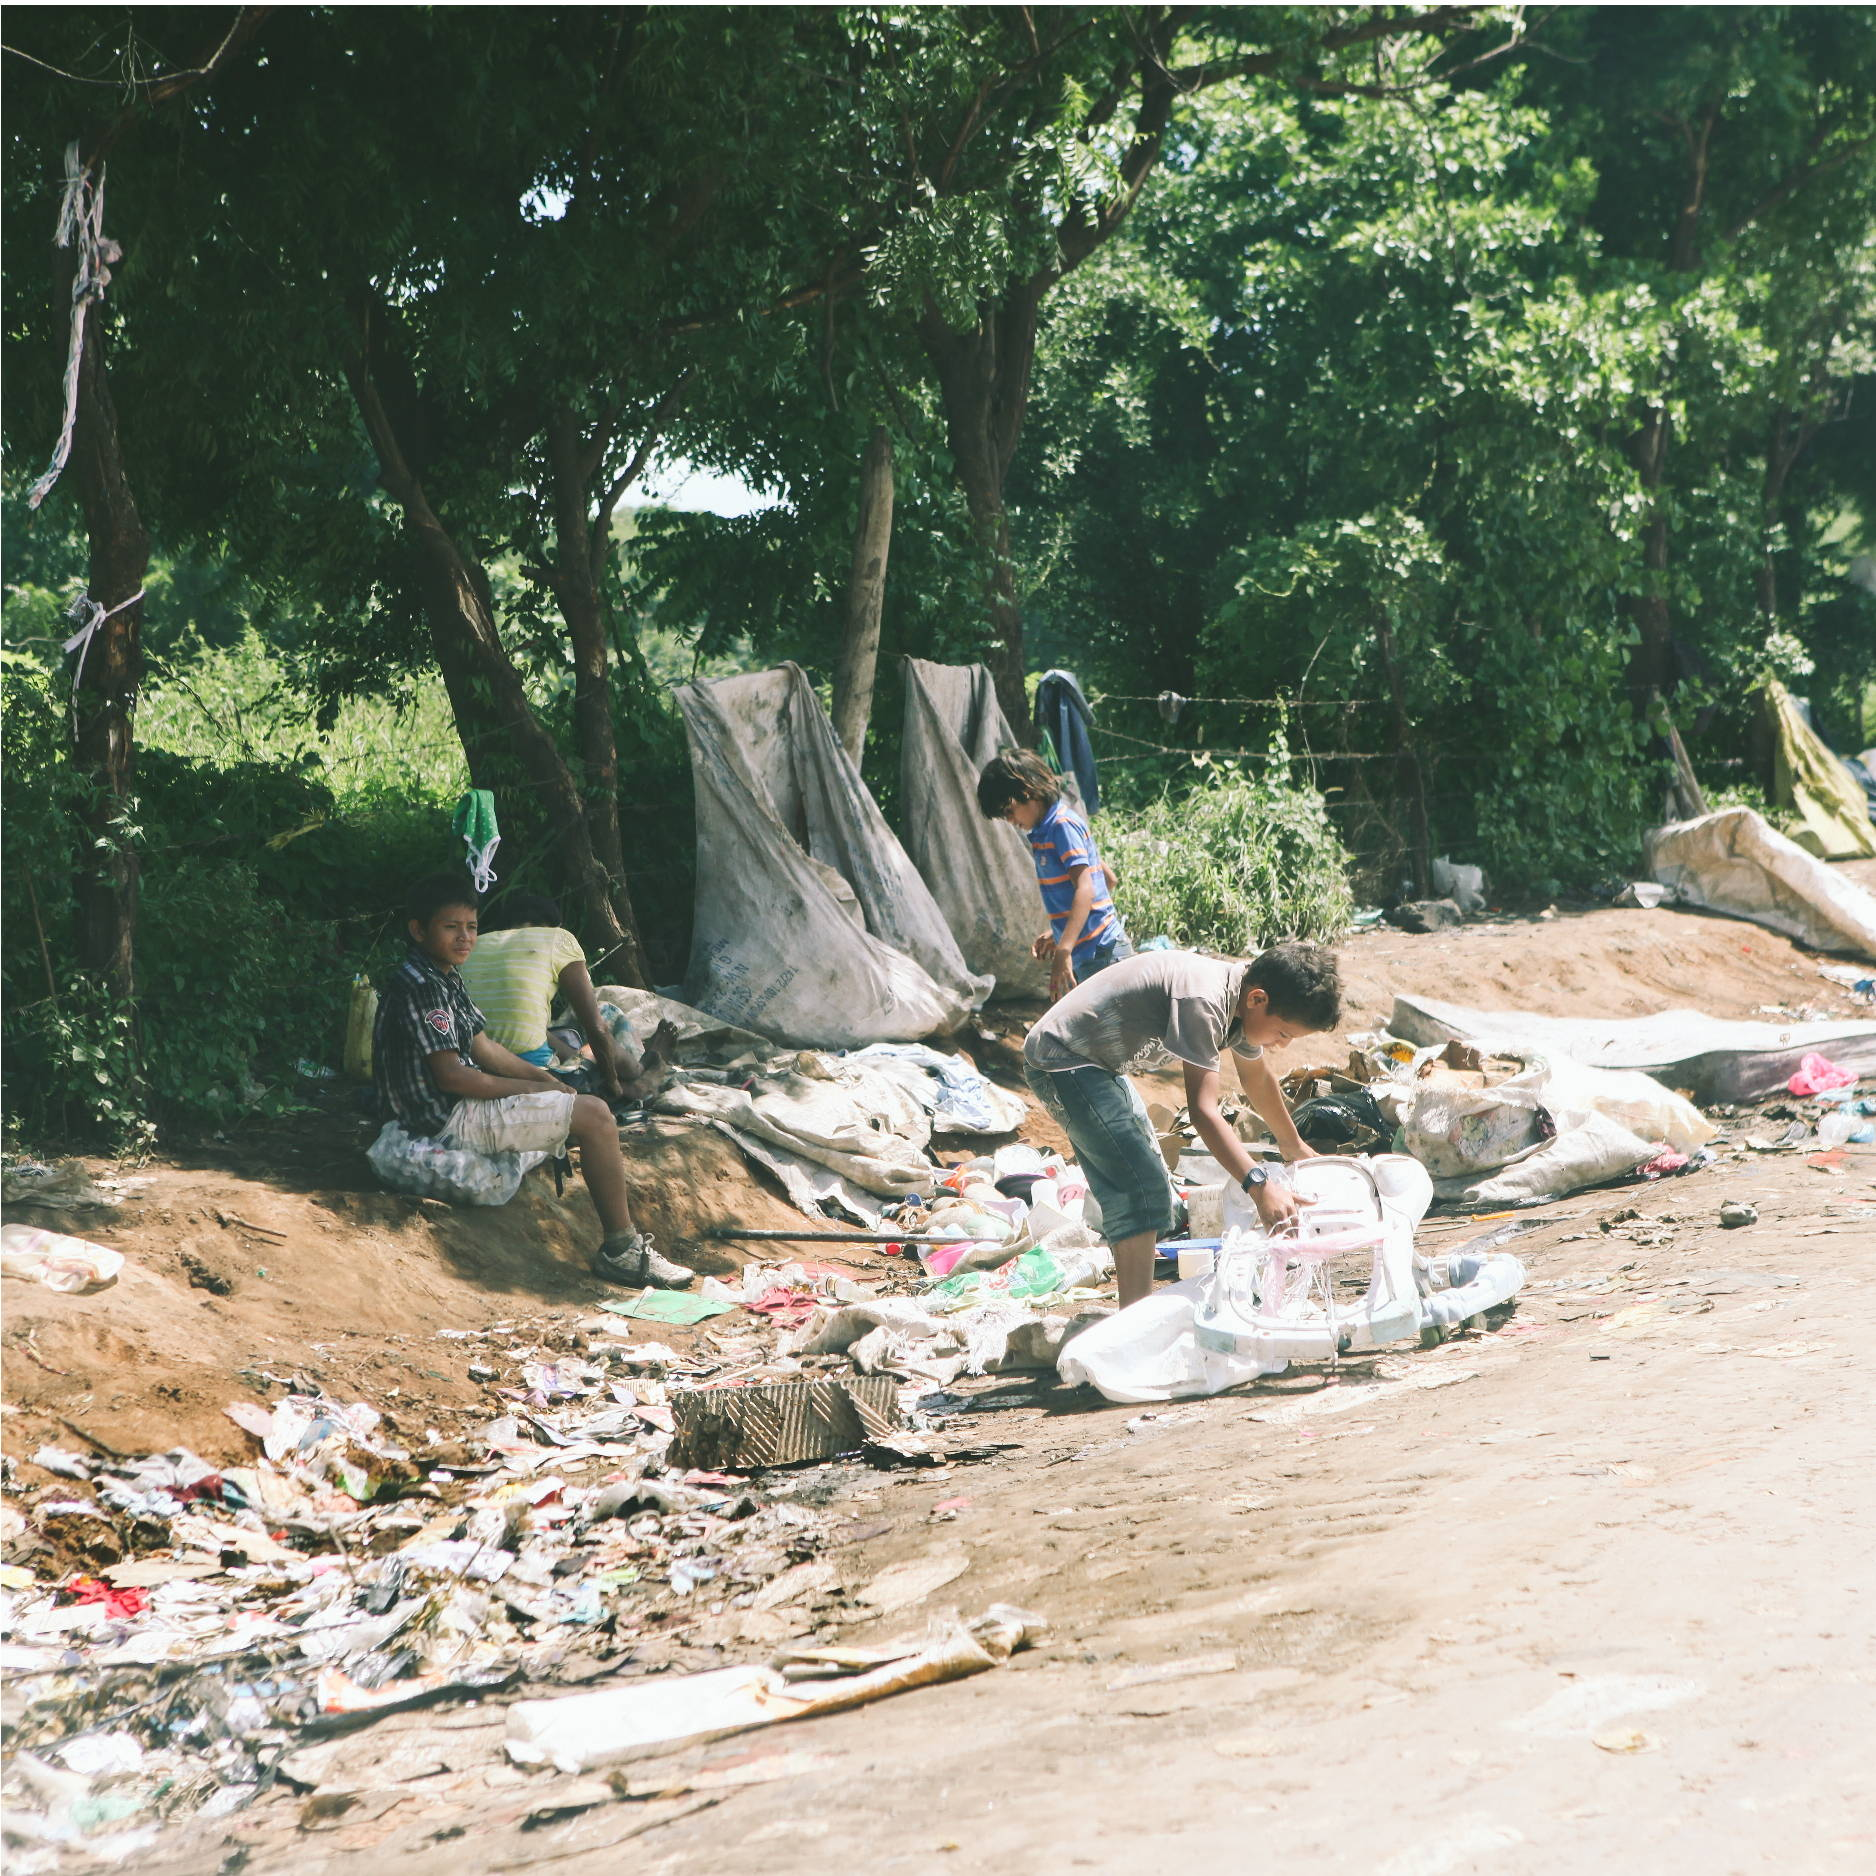 two young boys dig through trash that is strewn along the side of a nicaraguan dirt road as they look for food.